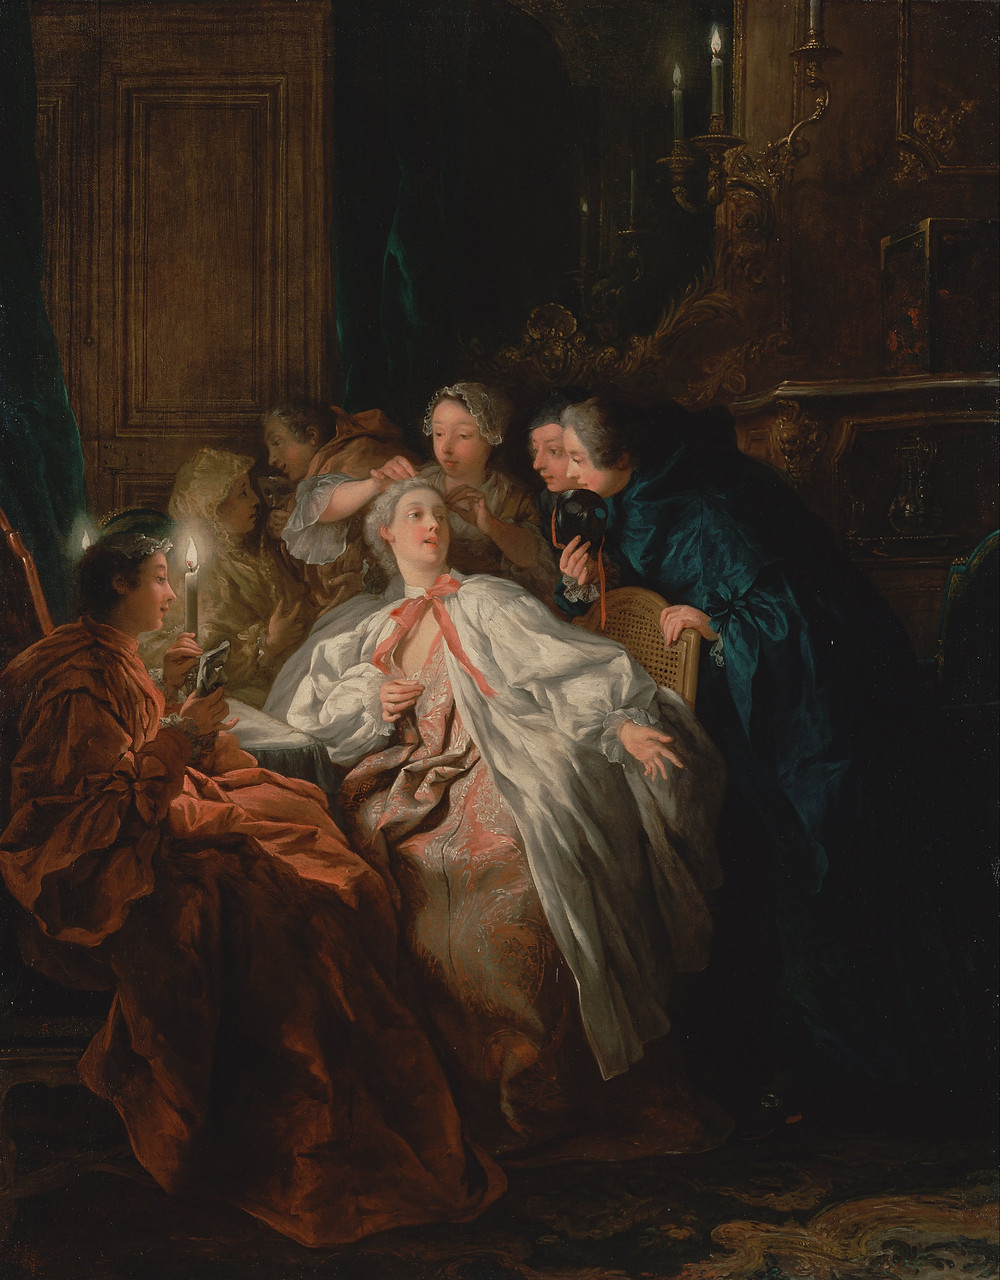 Before the Ball by Jean François de Troy, 1735